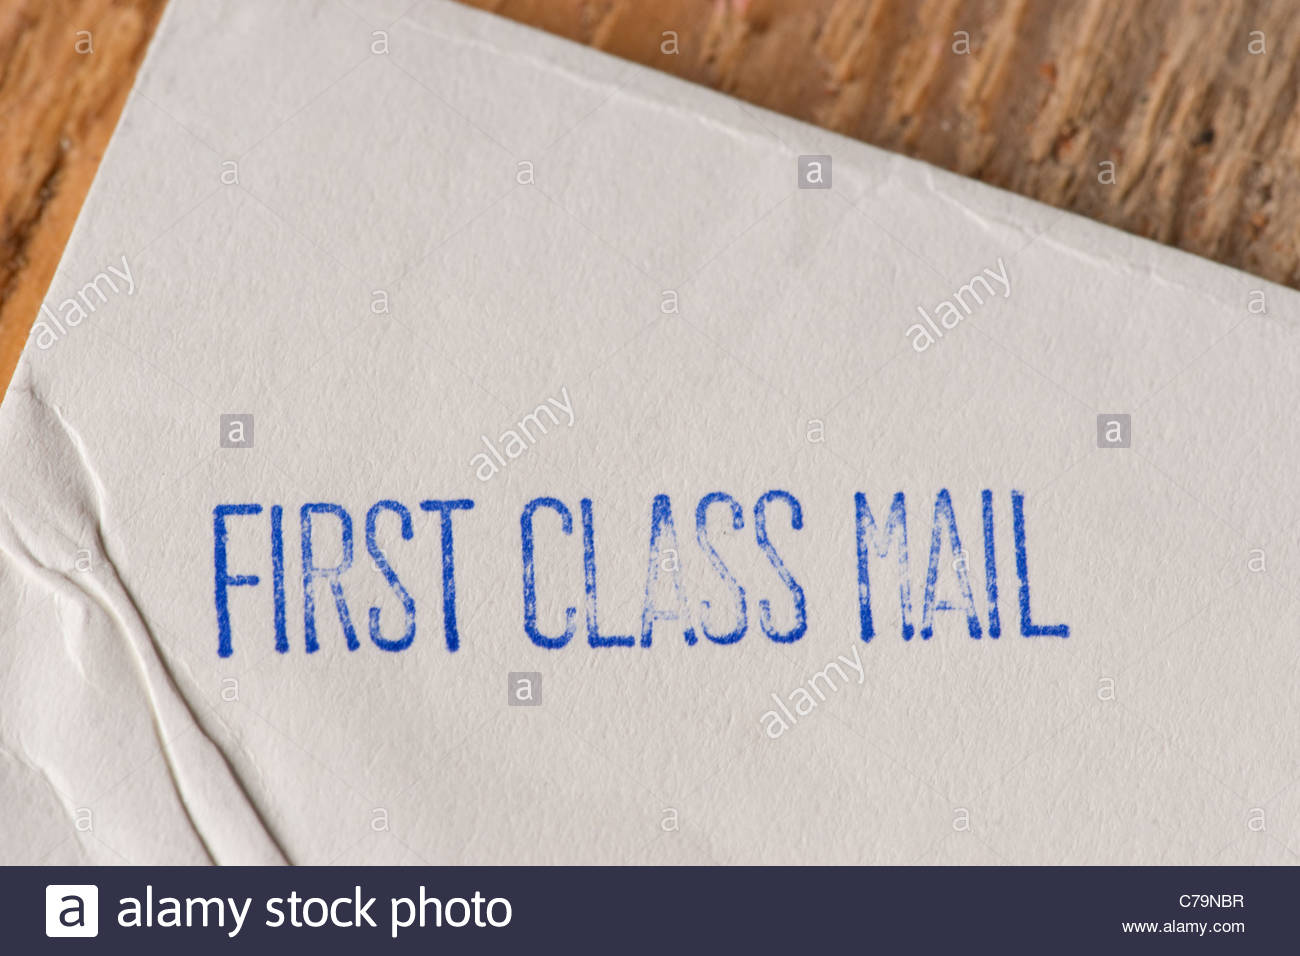 First class mail envelope - Stock Image